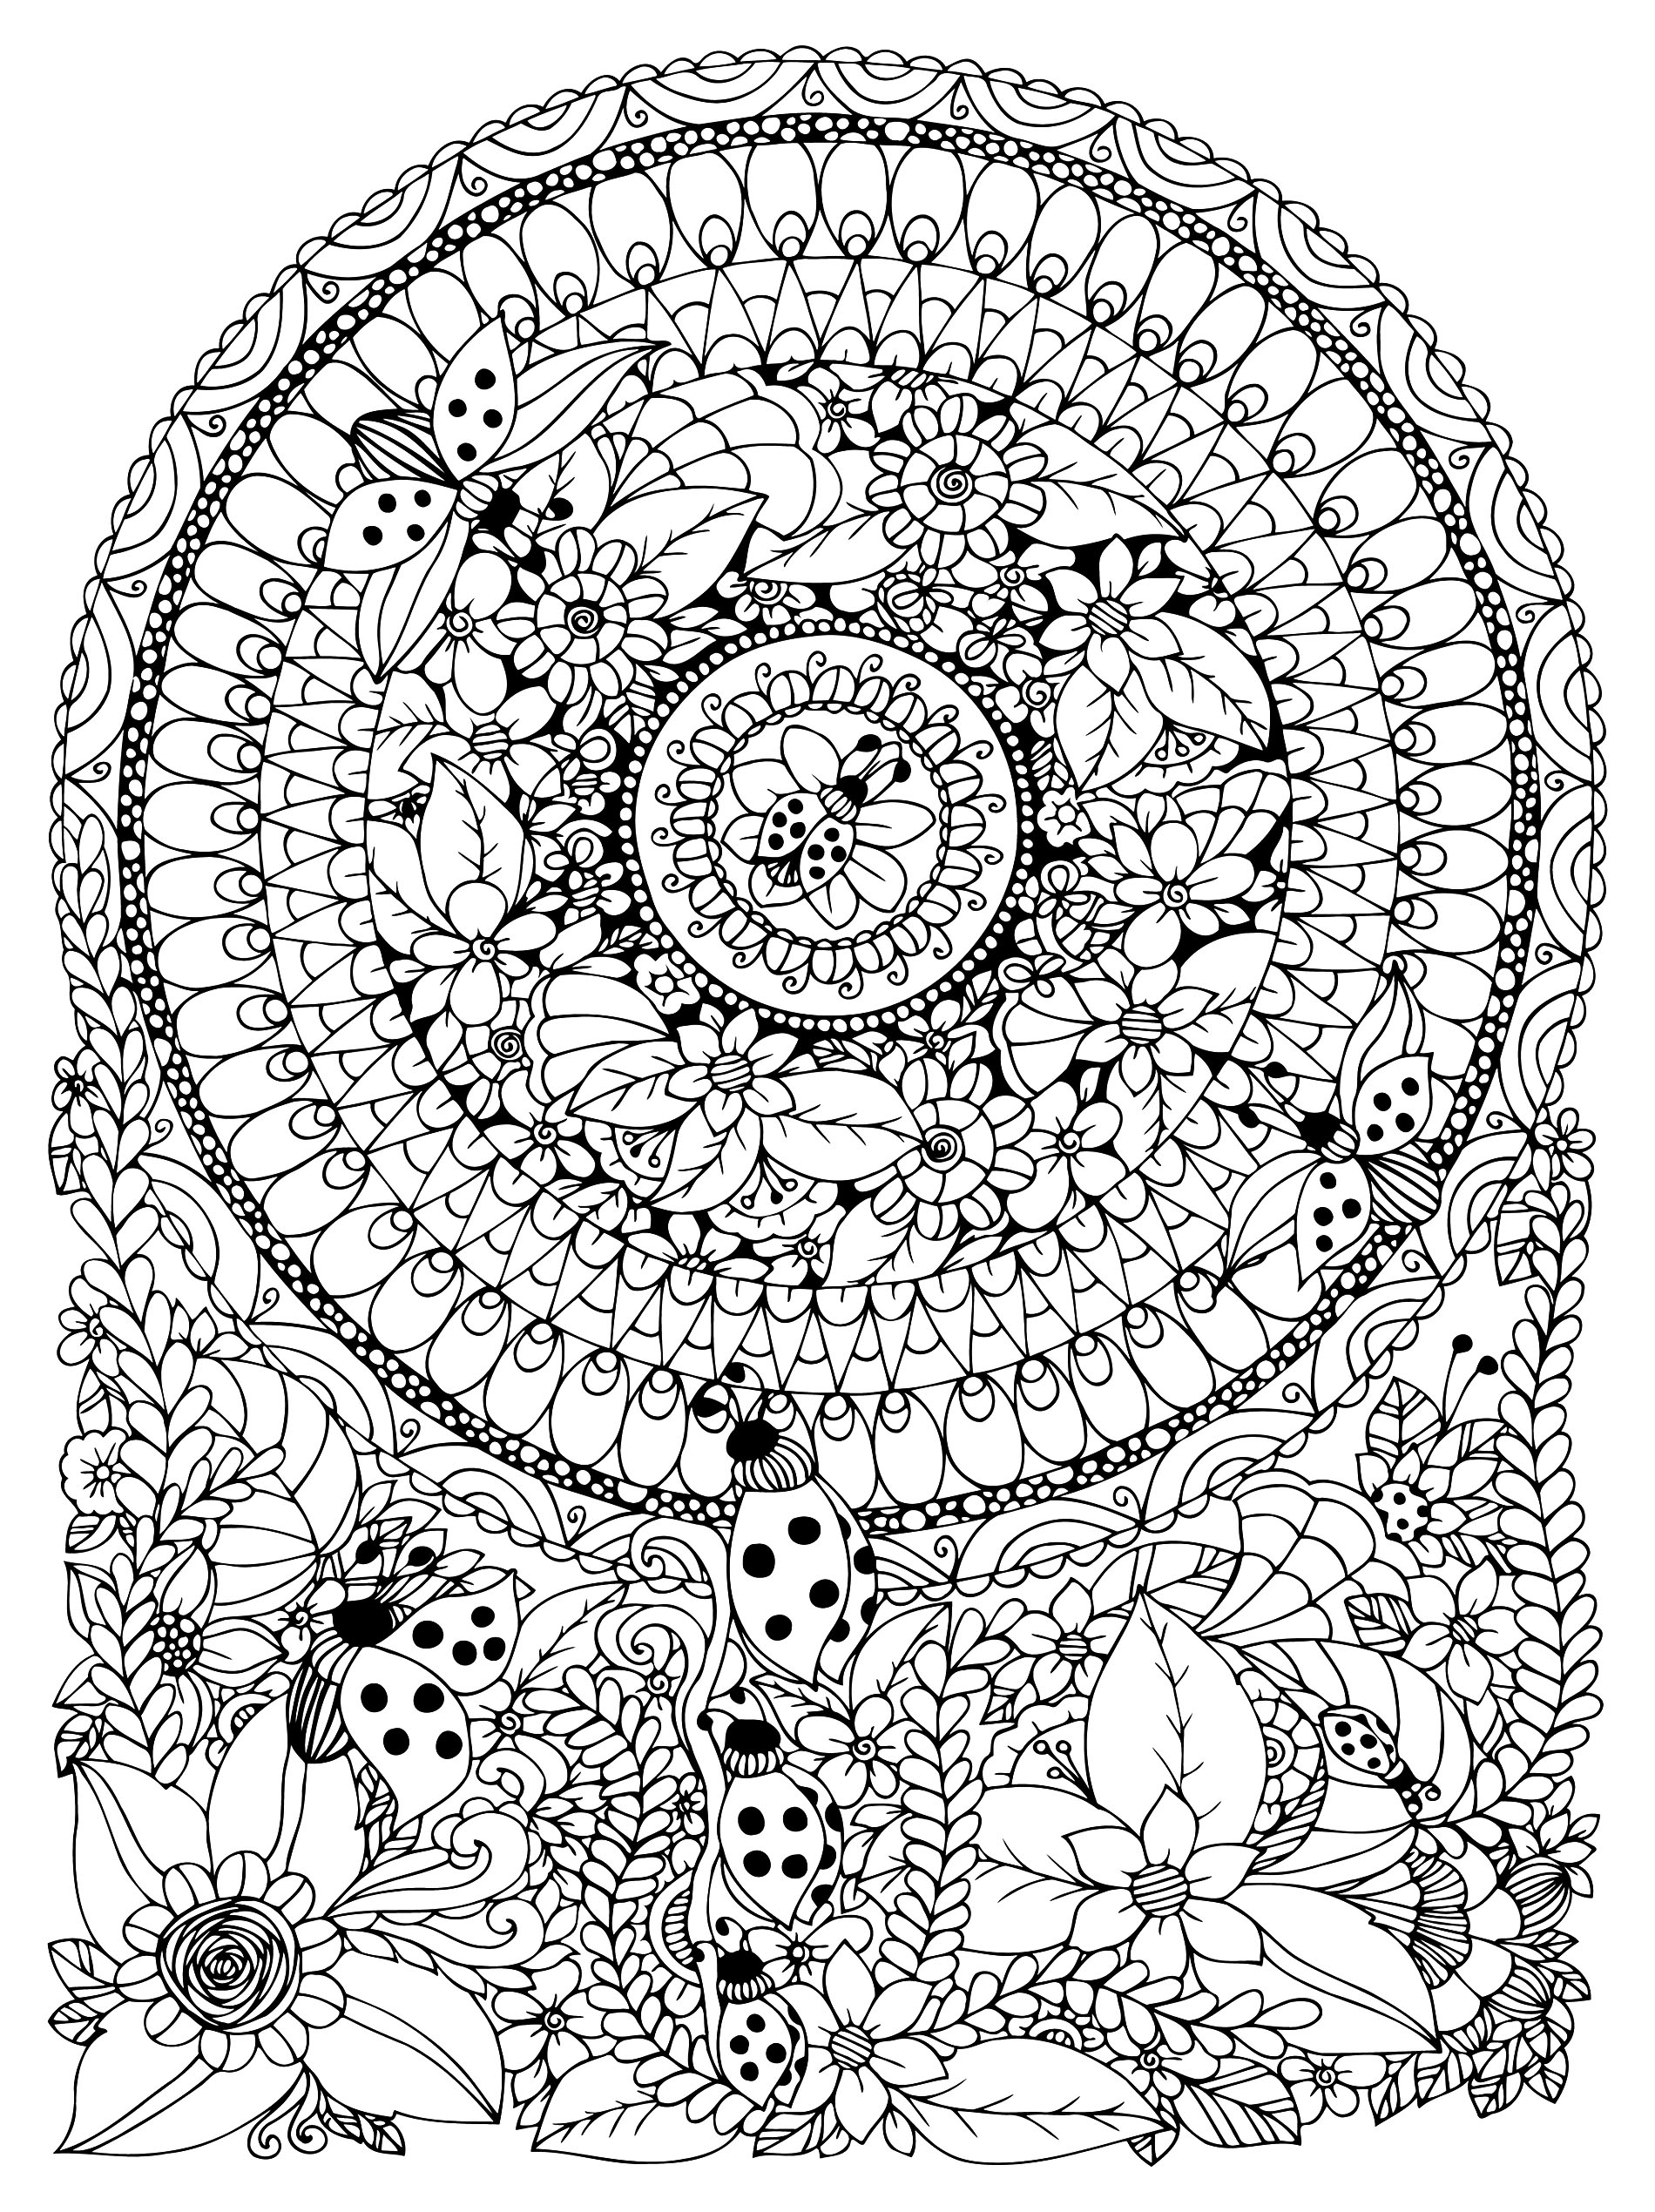 Many small details and little areas for a Mandala very original and harmonious. These ladybugs, leaves and flowers are really charming. Do whatever it takes to get rid of any distractions that may interfere with your coloring.